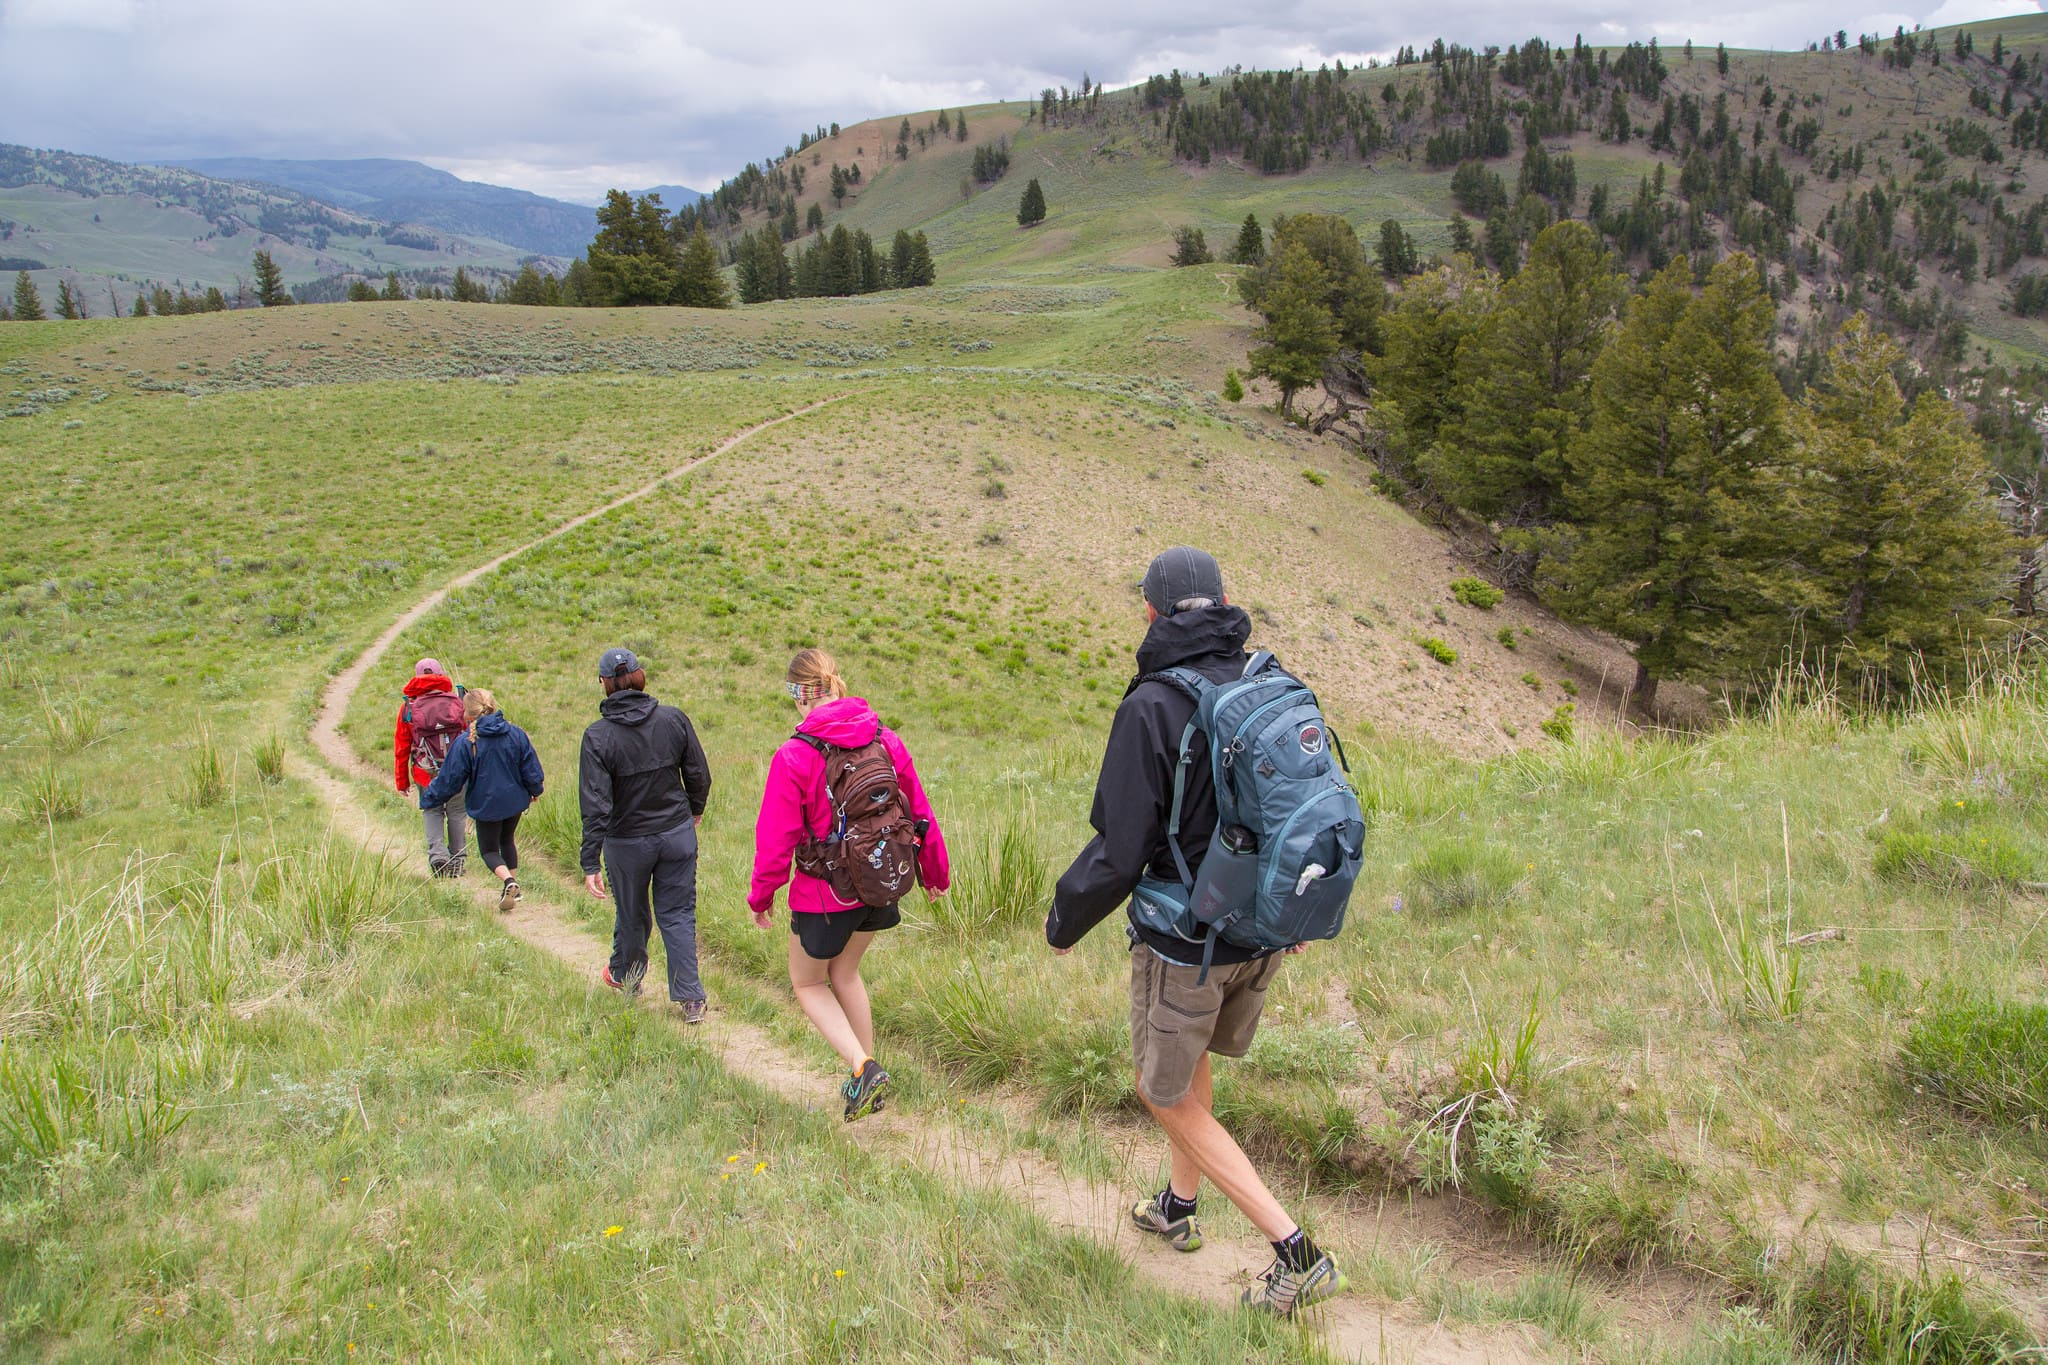 Day Hiking in Yellowstone National Park. | Must See Yellowstone Attractions that aren't Old Faithful. Meander & Coast #yellowstone #nationalpark #yellowstoneattractions #thingstosee #wyoming #hiking #dayhike